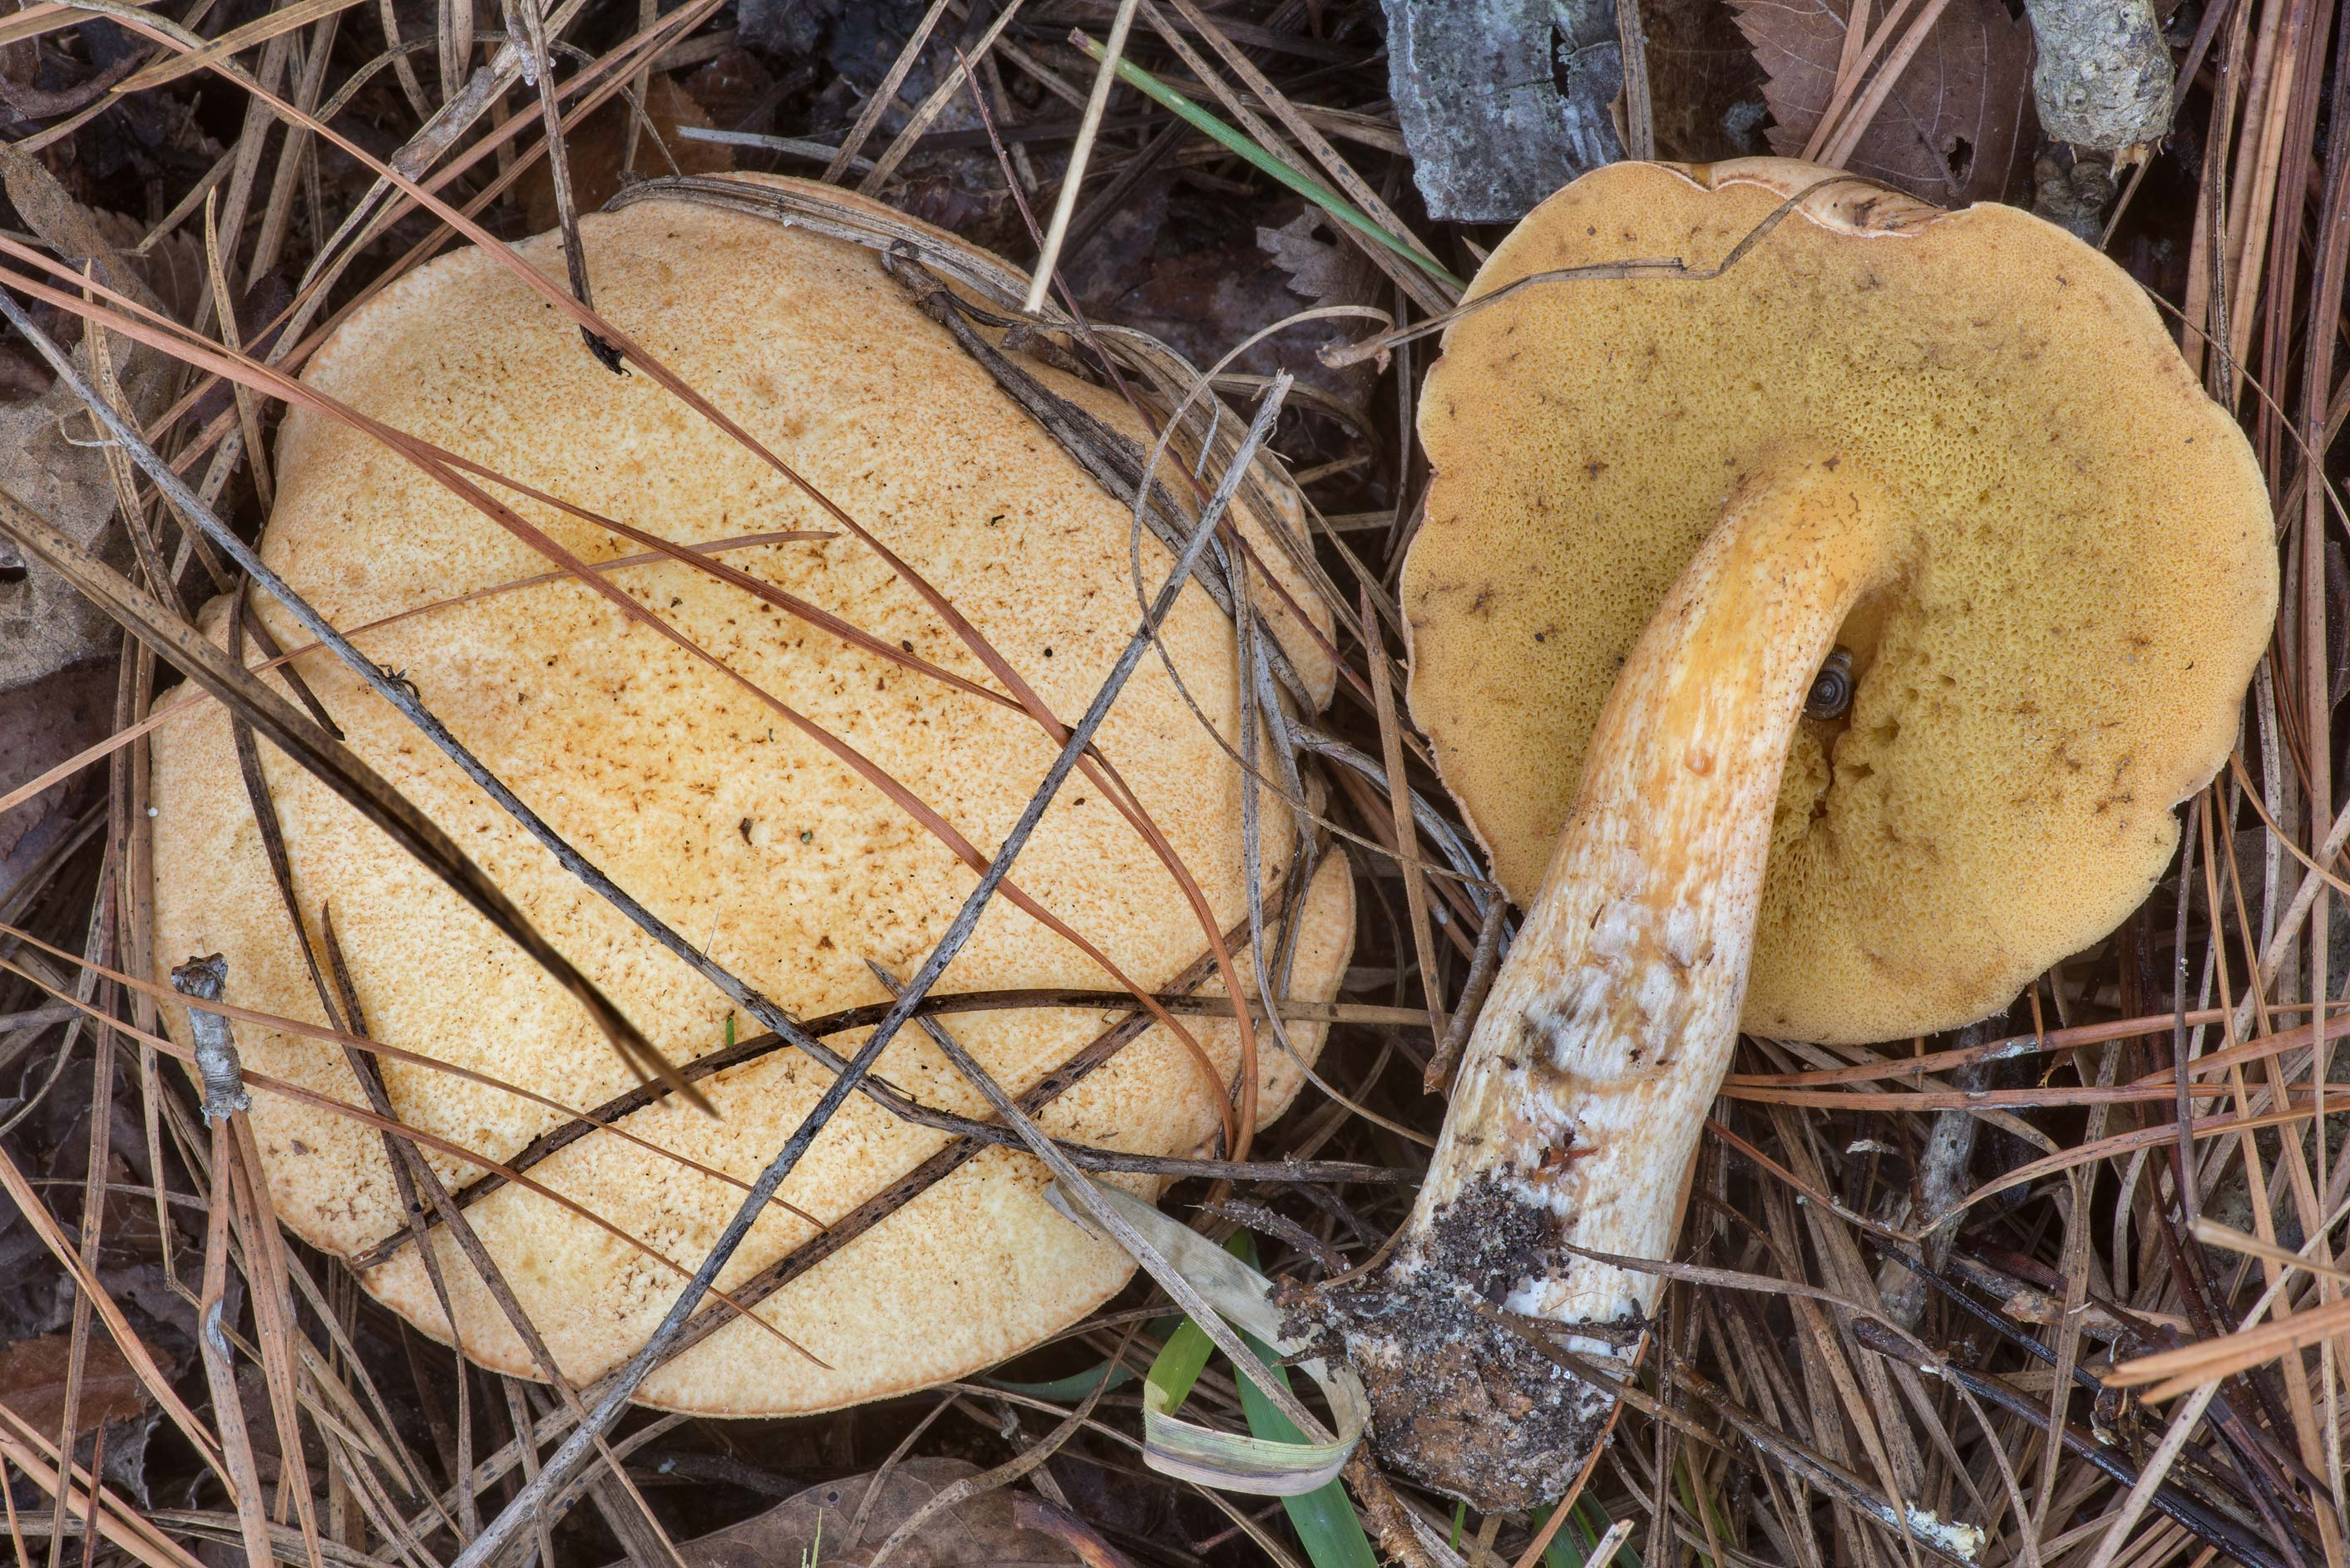 Bolete mushrooms Suillus hirtellus in a pine...in Sam Houston National Forest. Texas